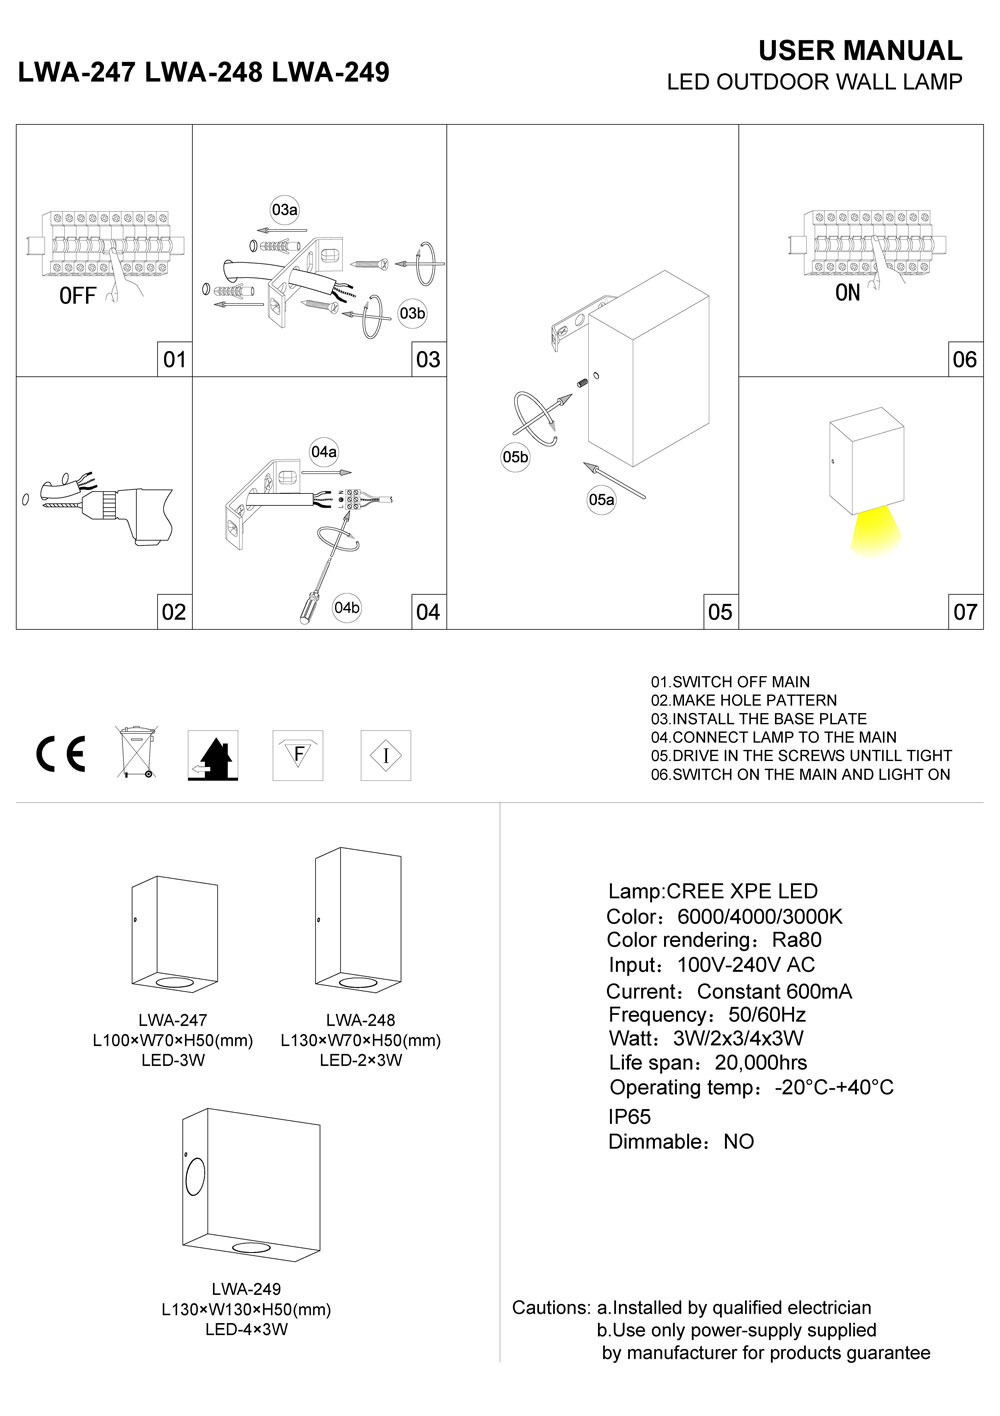 LWA-247-LWA-248-LWA-249 up and down outside wall light installation guide